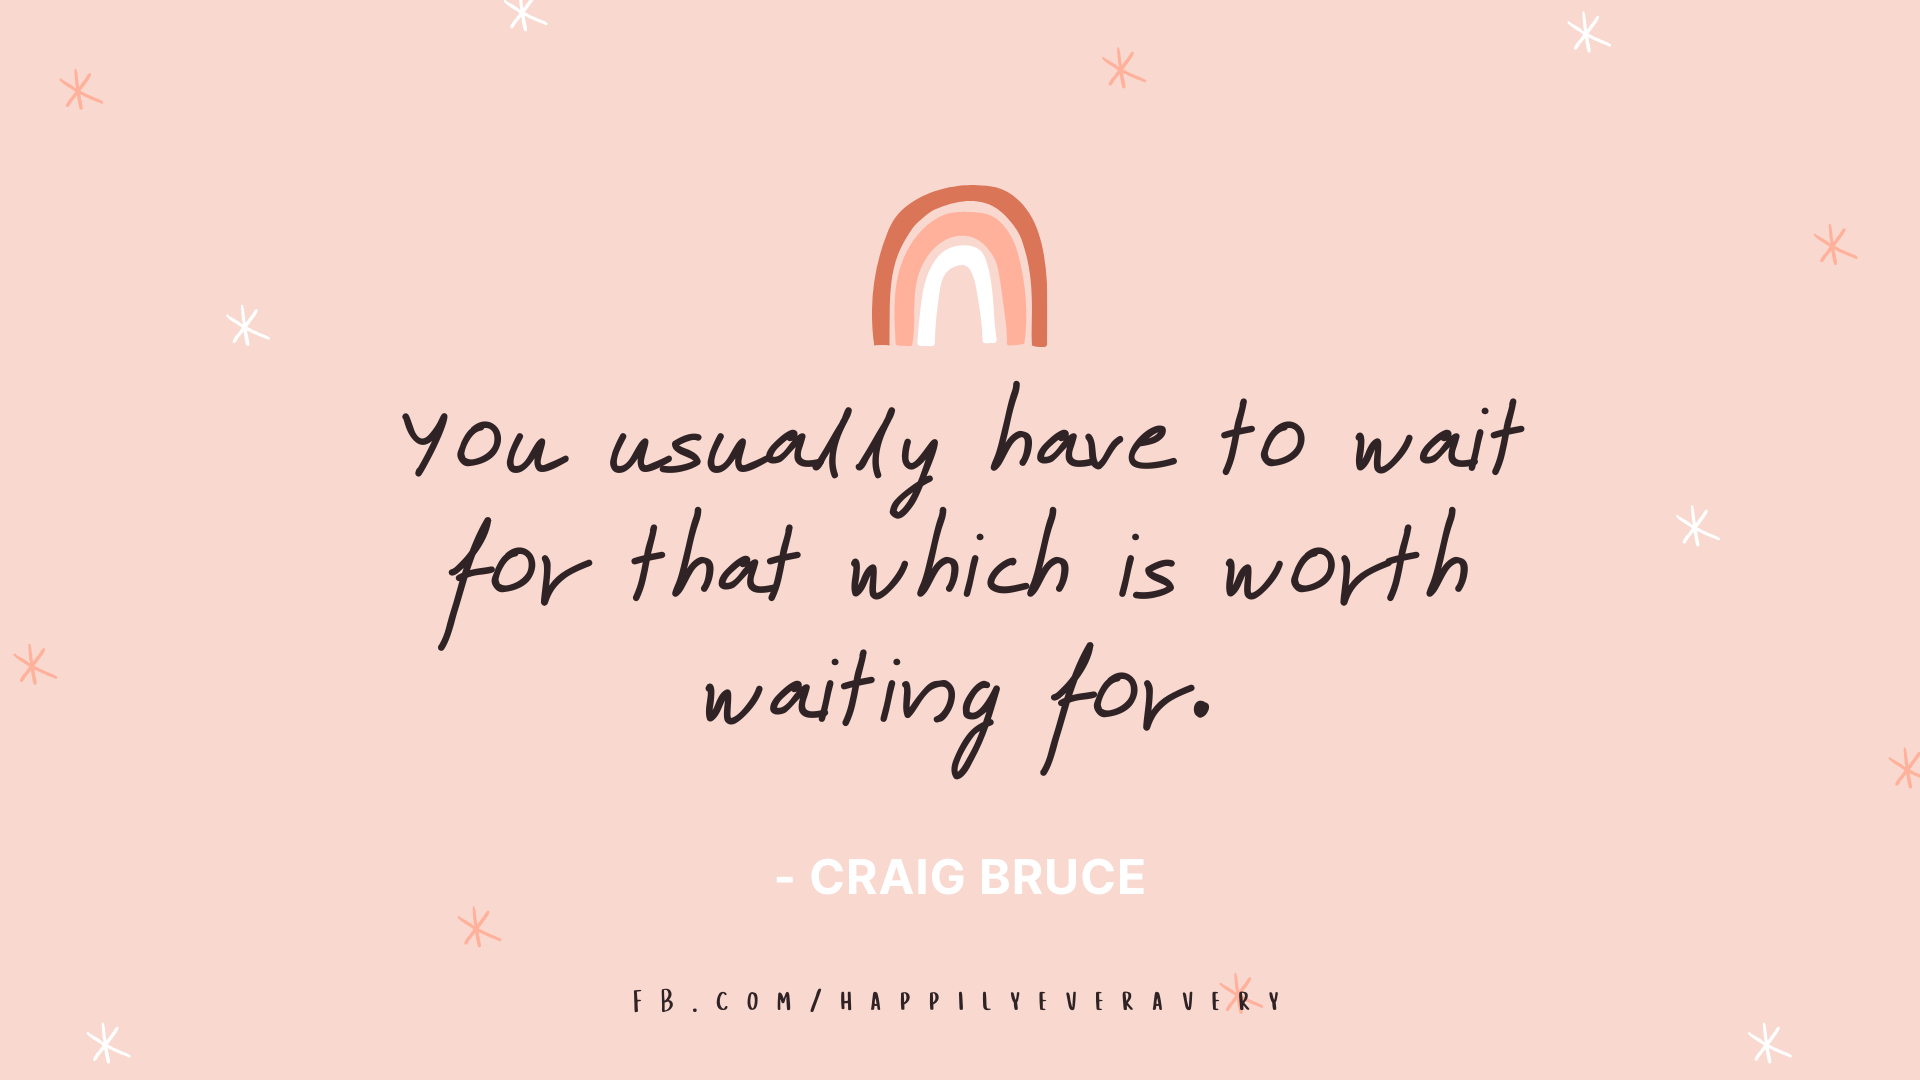 Happily Ever Avery // Worth Waiting For